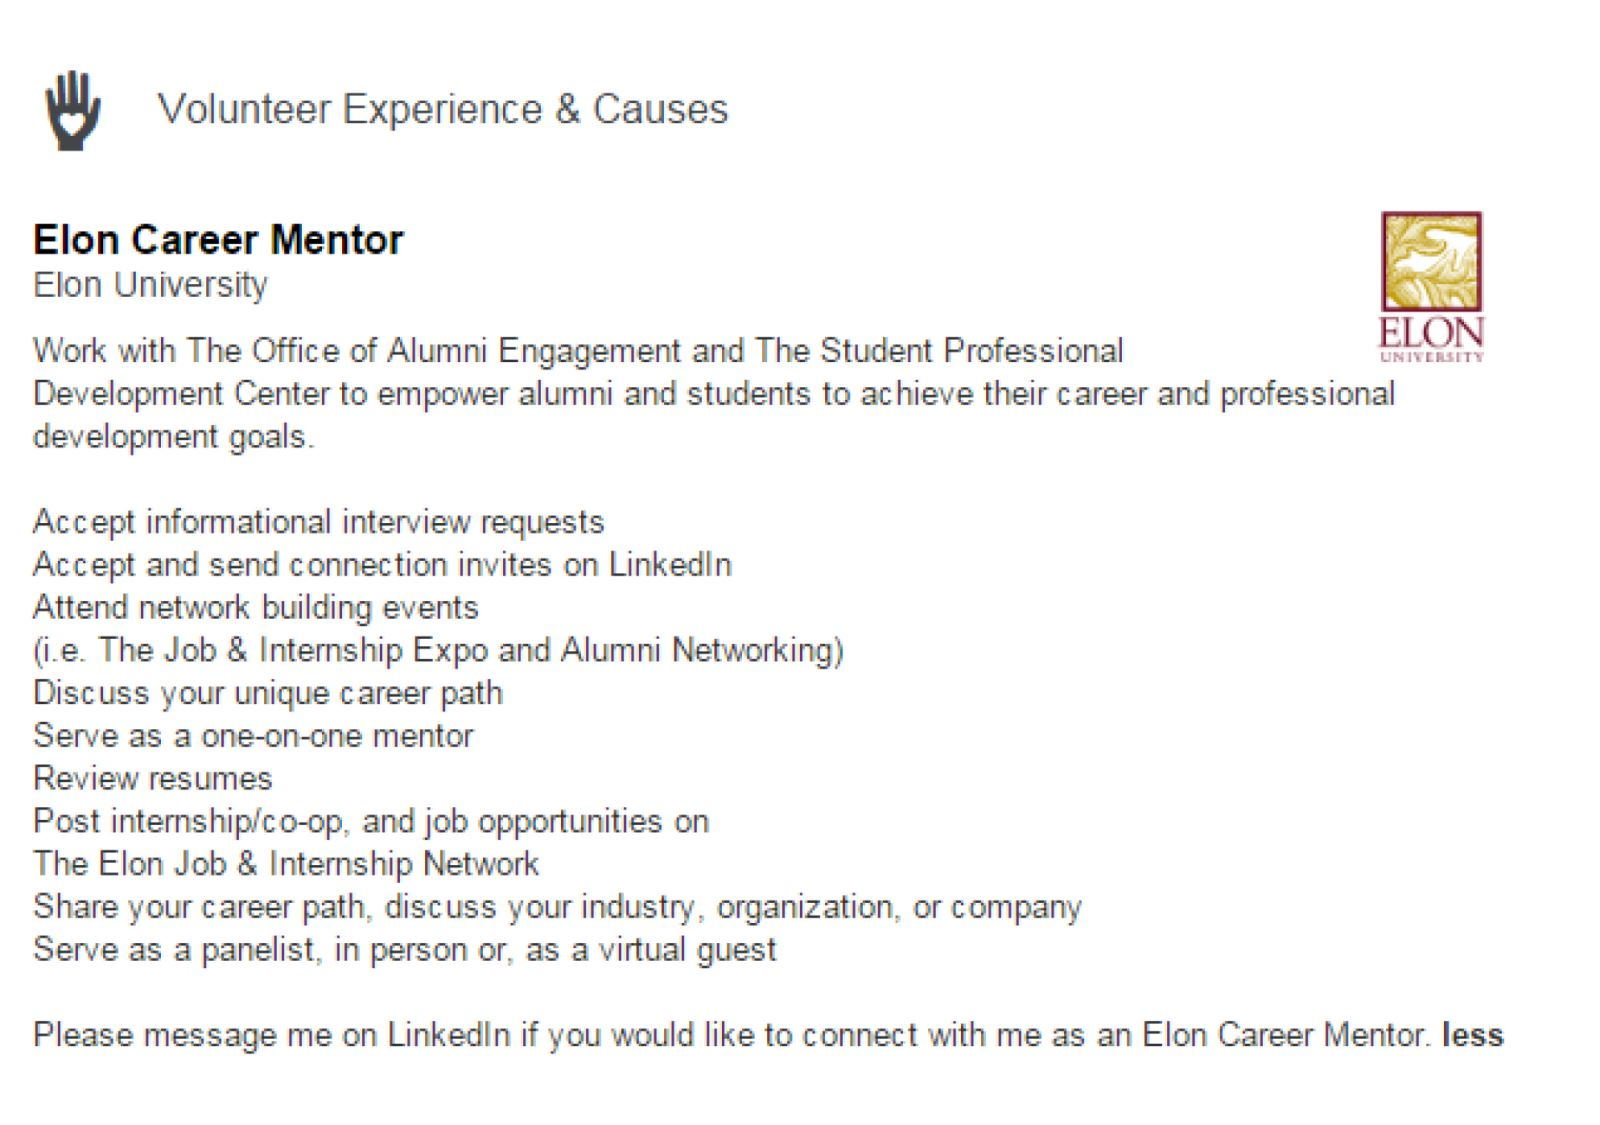 career mentors on linkedin submit a summary of interview questions and answers to careerservices edu earn a collegecareer rewards program objective